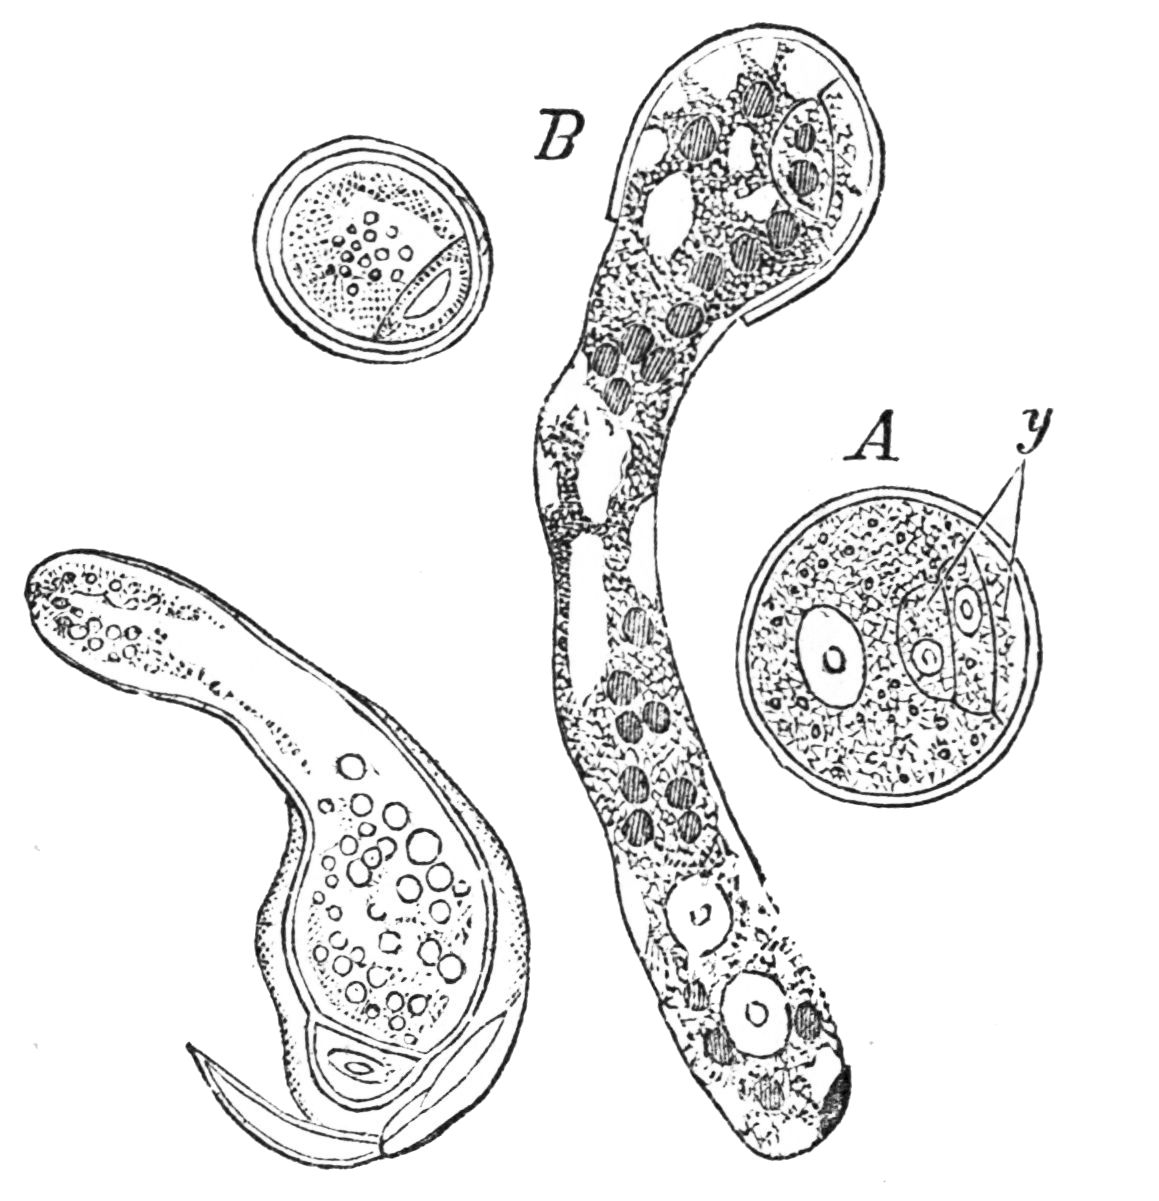 PSM V25 D178 The prothallus in various forms of pollen grains.jpg